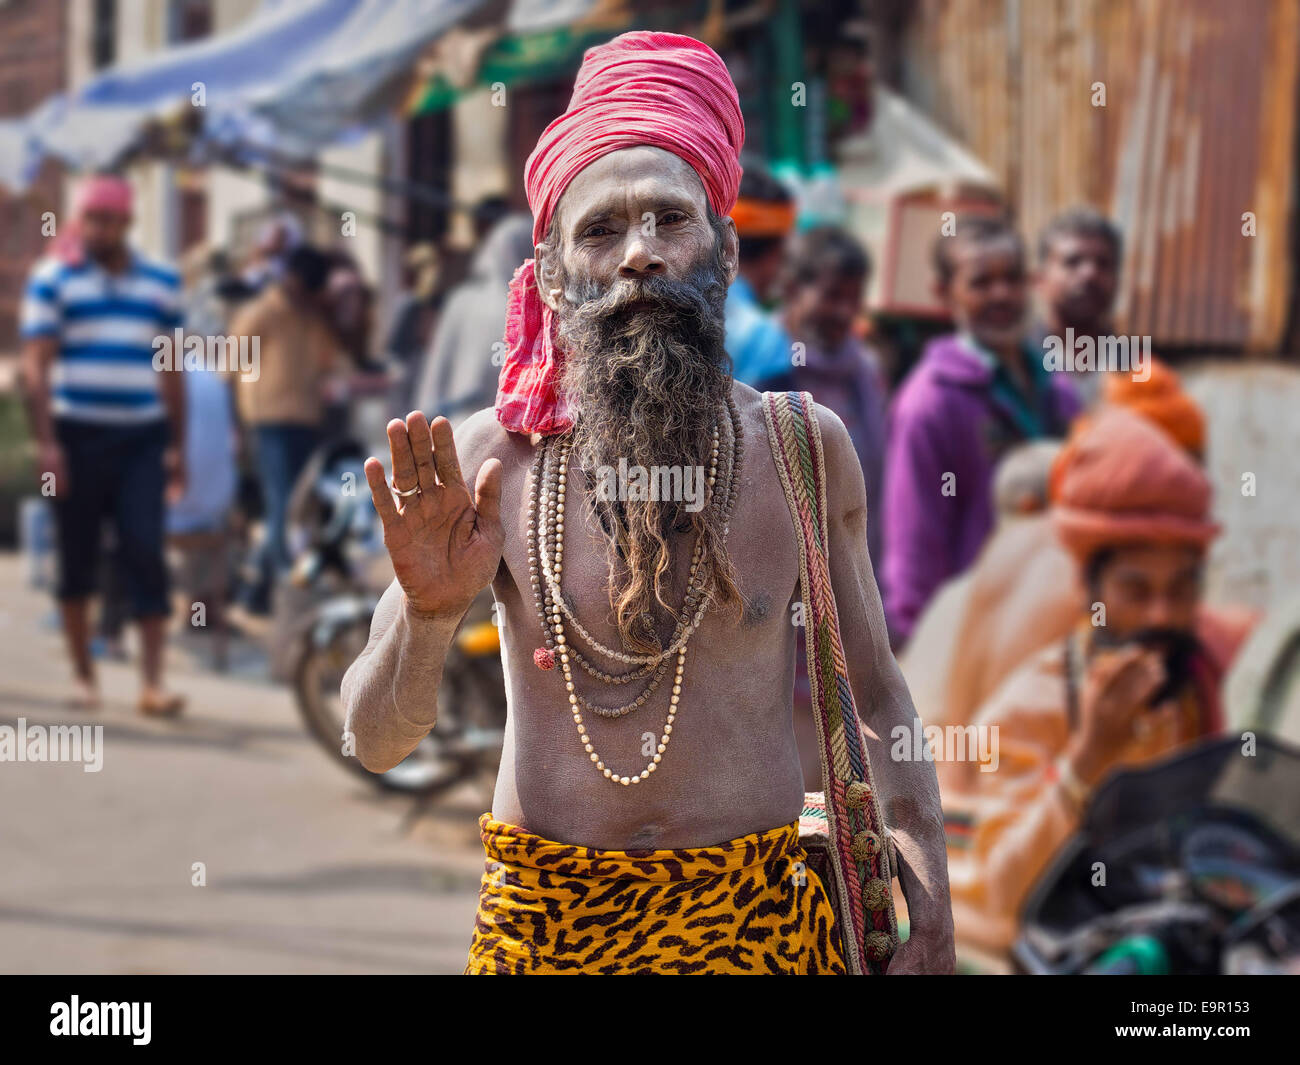 Portrait of a sadhu (Indian holy man) covered in ash and wearing brightly colored attire on a busy street in Varanasi, - Stock Image